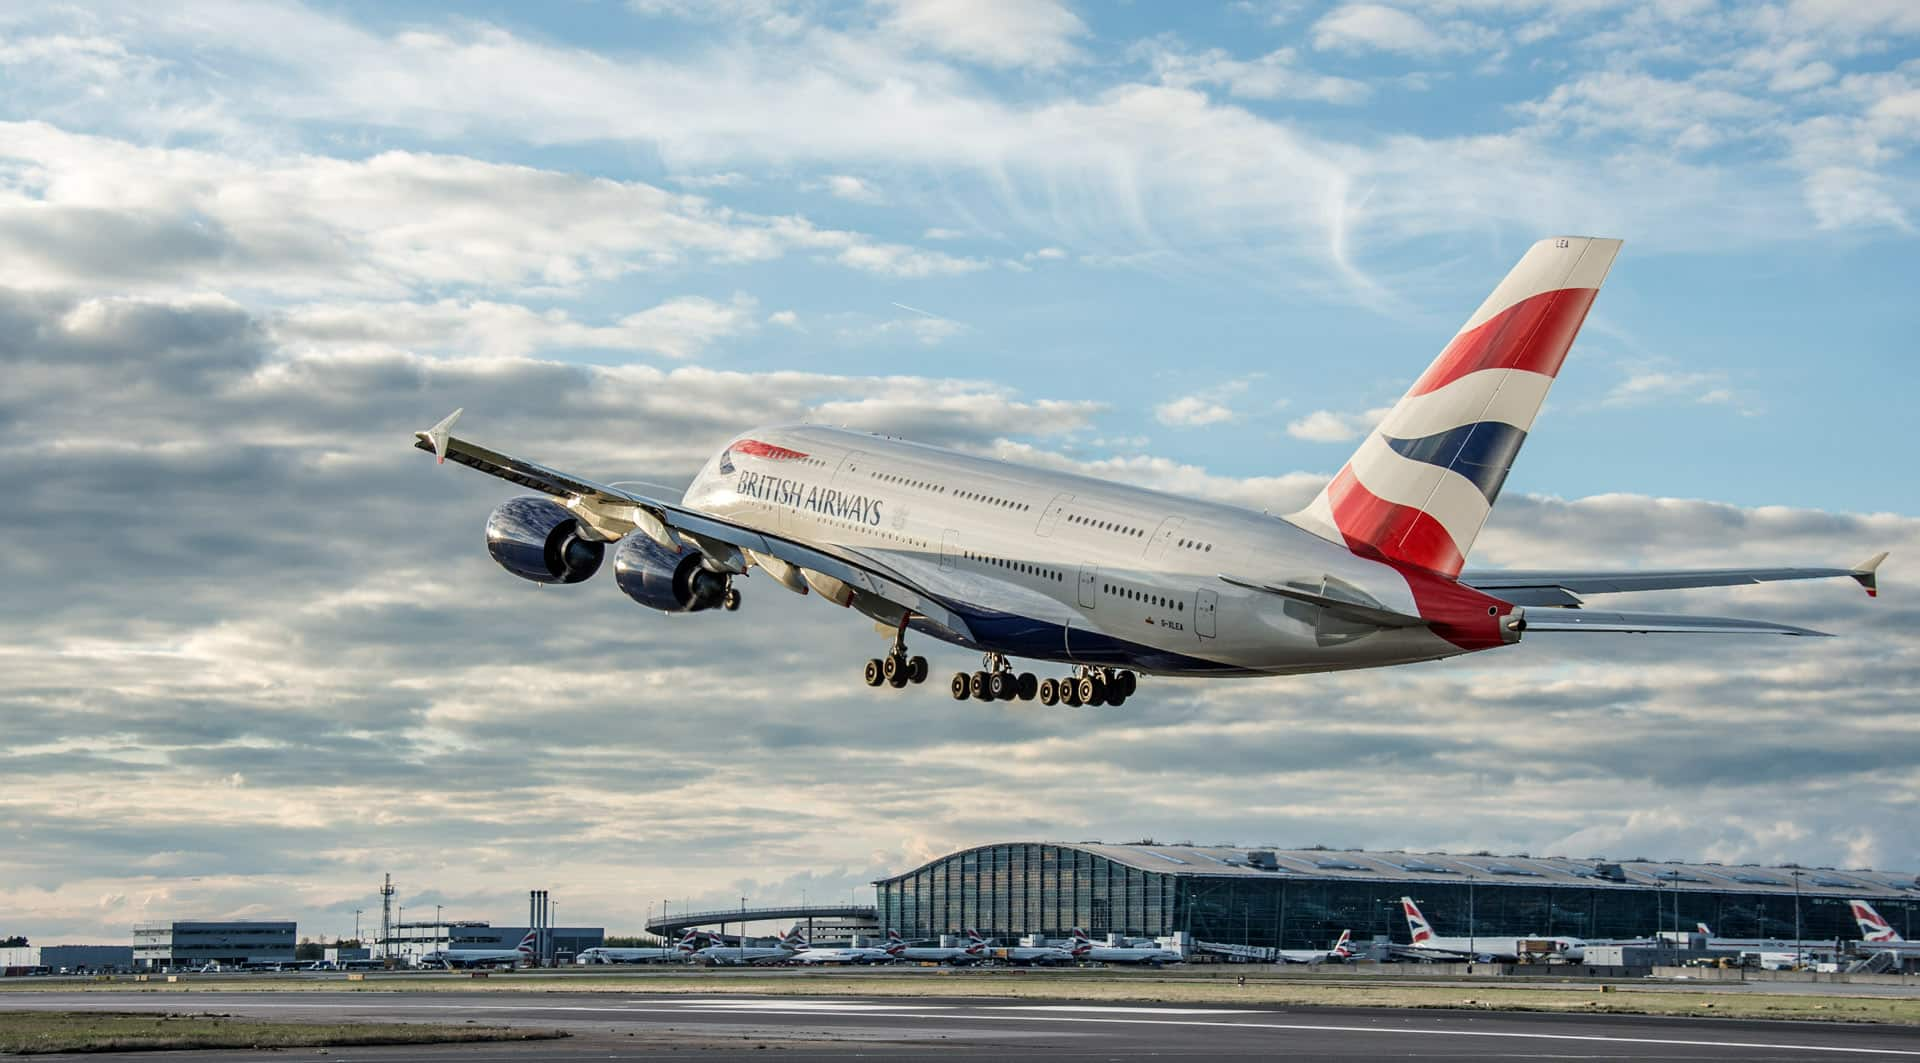 Аэропорт Хитроу, British Airways Аэробус A380 на взлете, октябрь 2013.